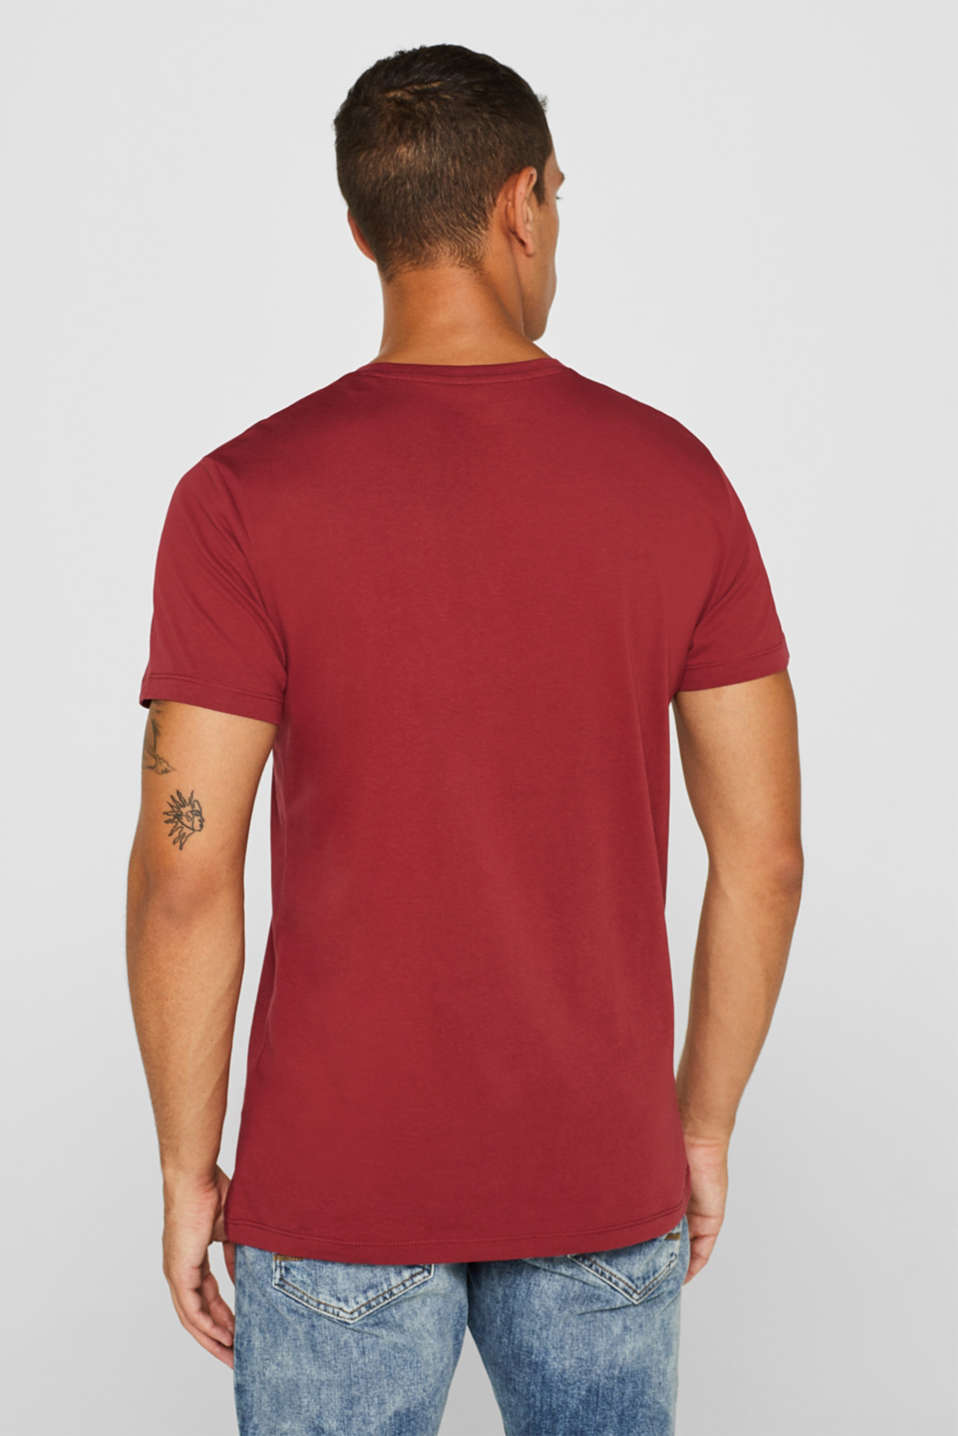 Jersey T-shirt in 100% cotton, BORDEAUX RED 2, detail image number 3